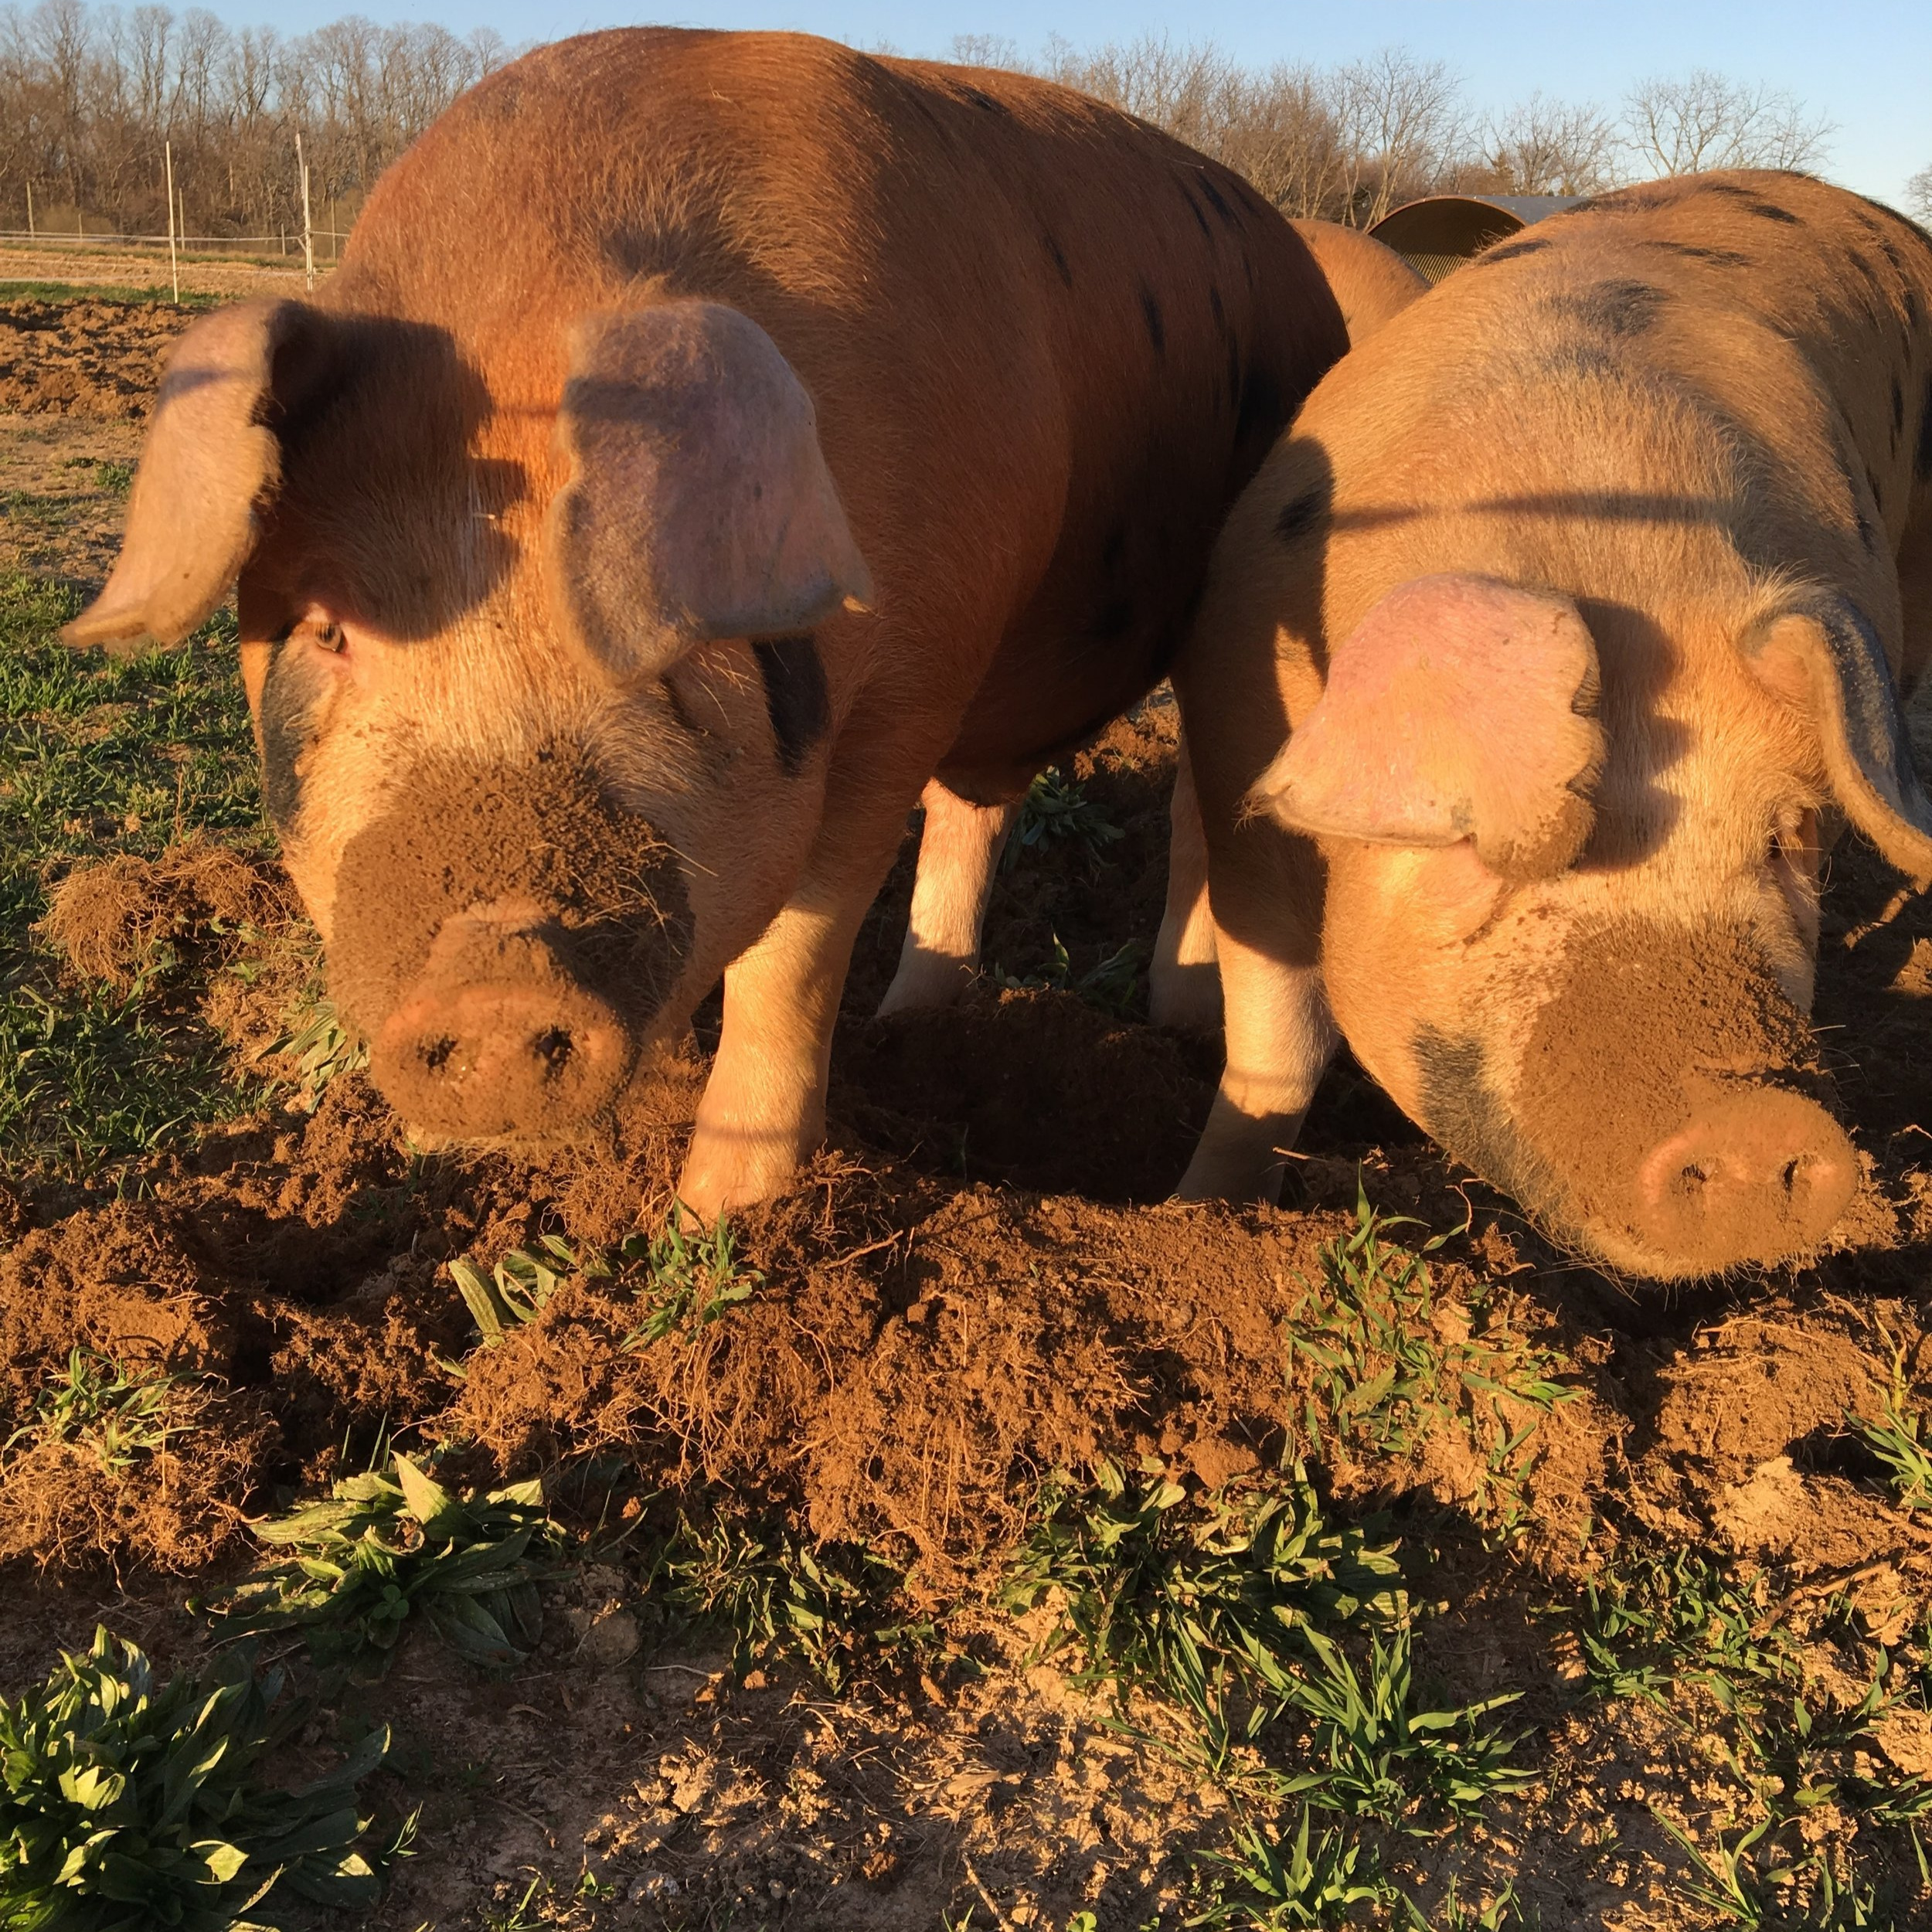 We raise heritage breed hogs outdoors throughout the year. - Our pigs are rotated through our vegetable fields and pastures. We allow and encourage them to dig, run and act like pigs. This rotation helps us cut down on feed costs and help fertilize our fields for next years' vegetables. We raise them without antibiotics and supplement their forage diet with organically grown, non GMO grain. They also are fed vegetable and fruit scraps from our own farm as well as other local farms, restaurants and businesses which helps us minimize waste in the community and keep our pigs happy!